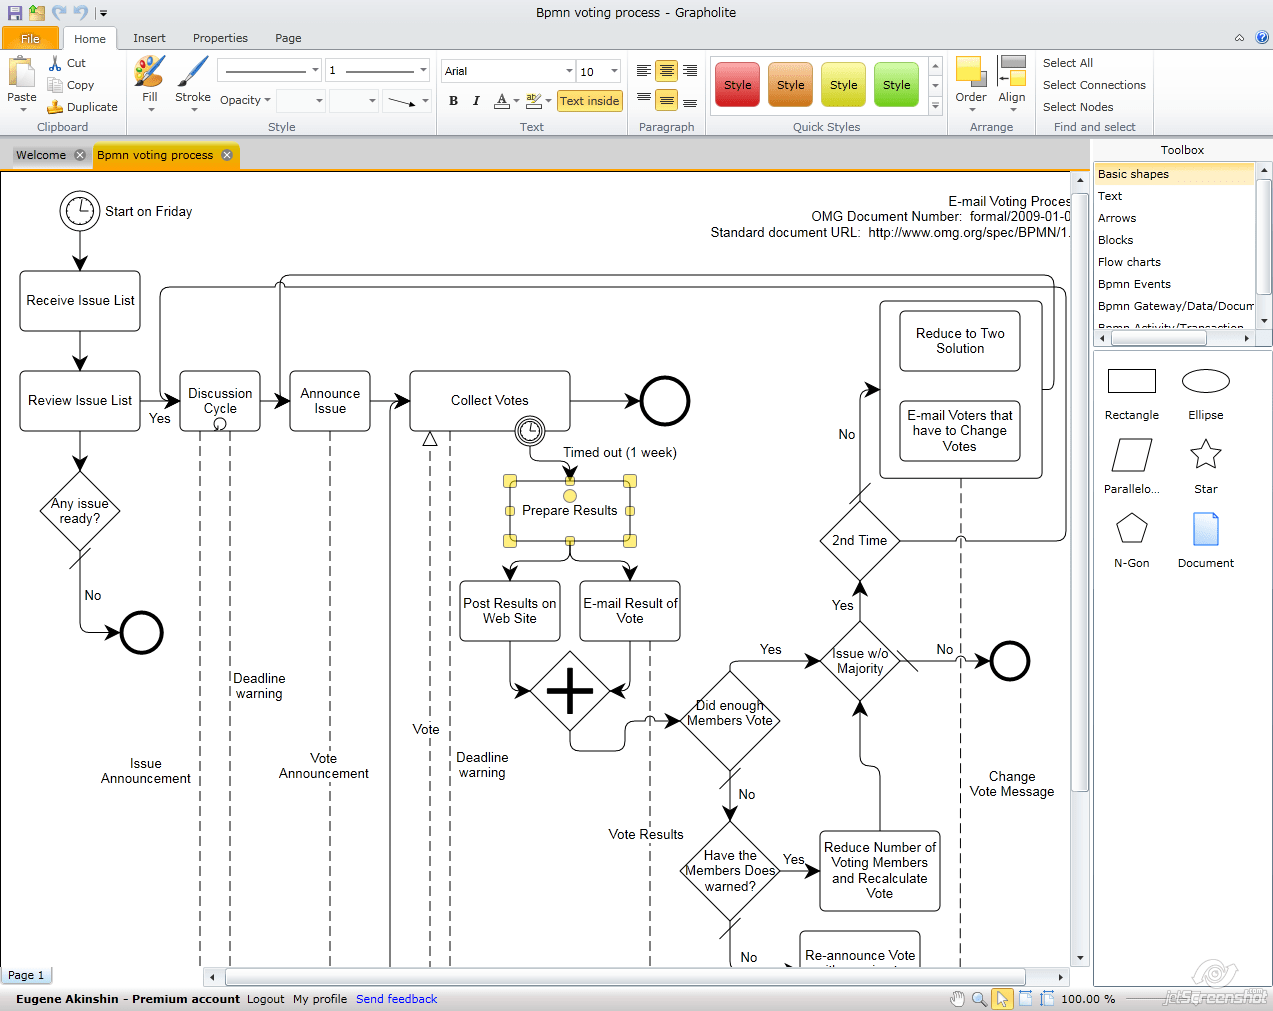 Grapholite Online Diagramming Solution Now Supports BPMN